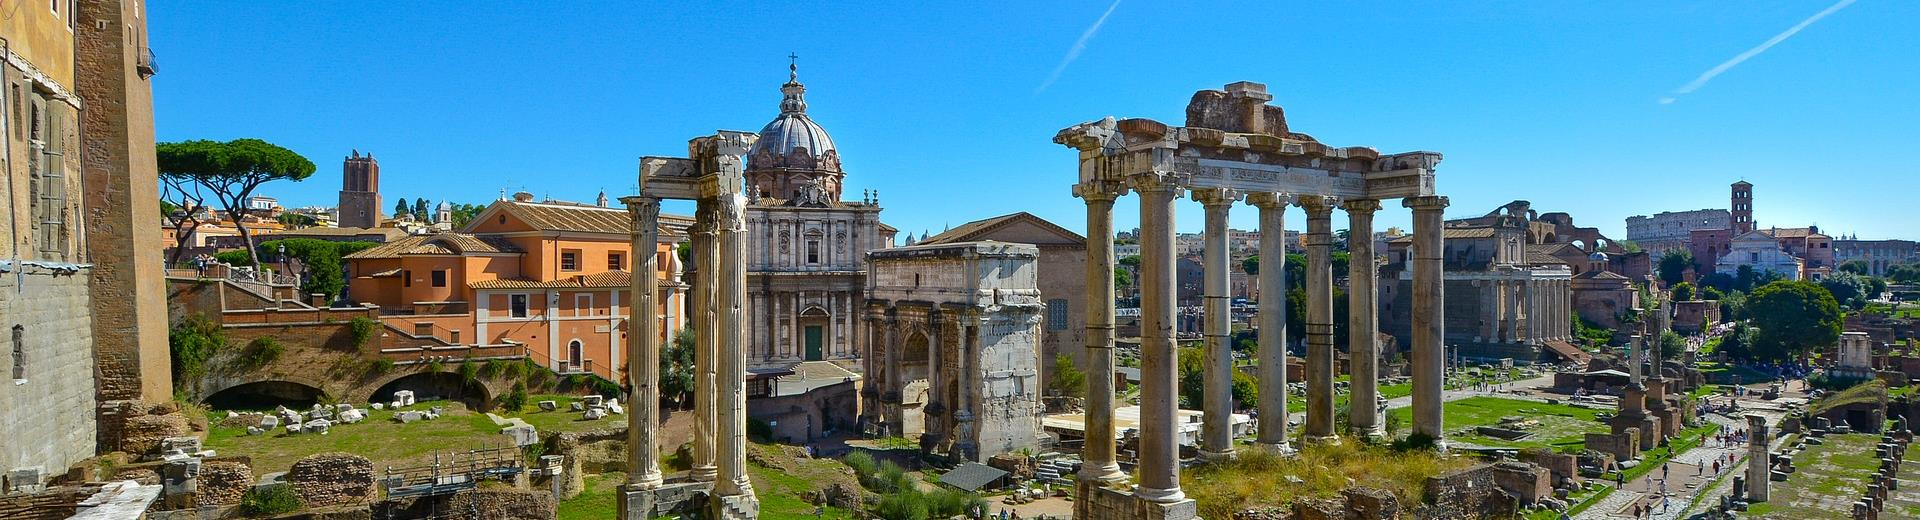 Find out with the Globus Hotel the itineraries to discover Rome!